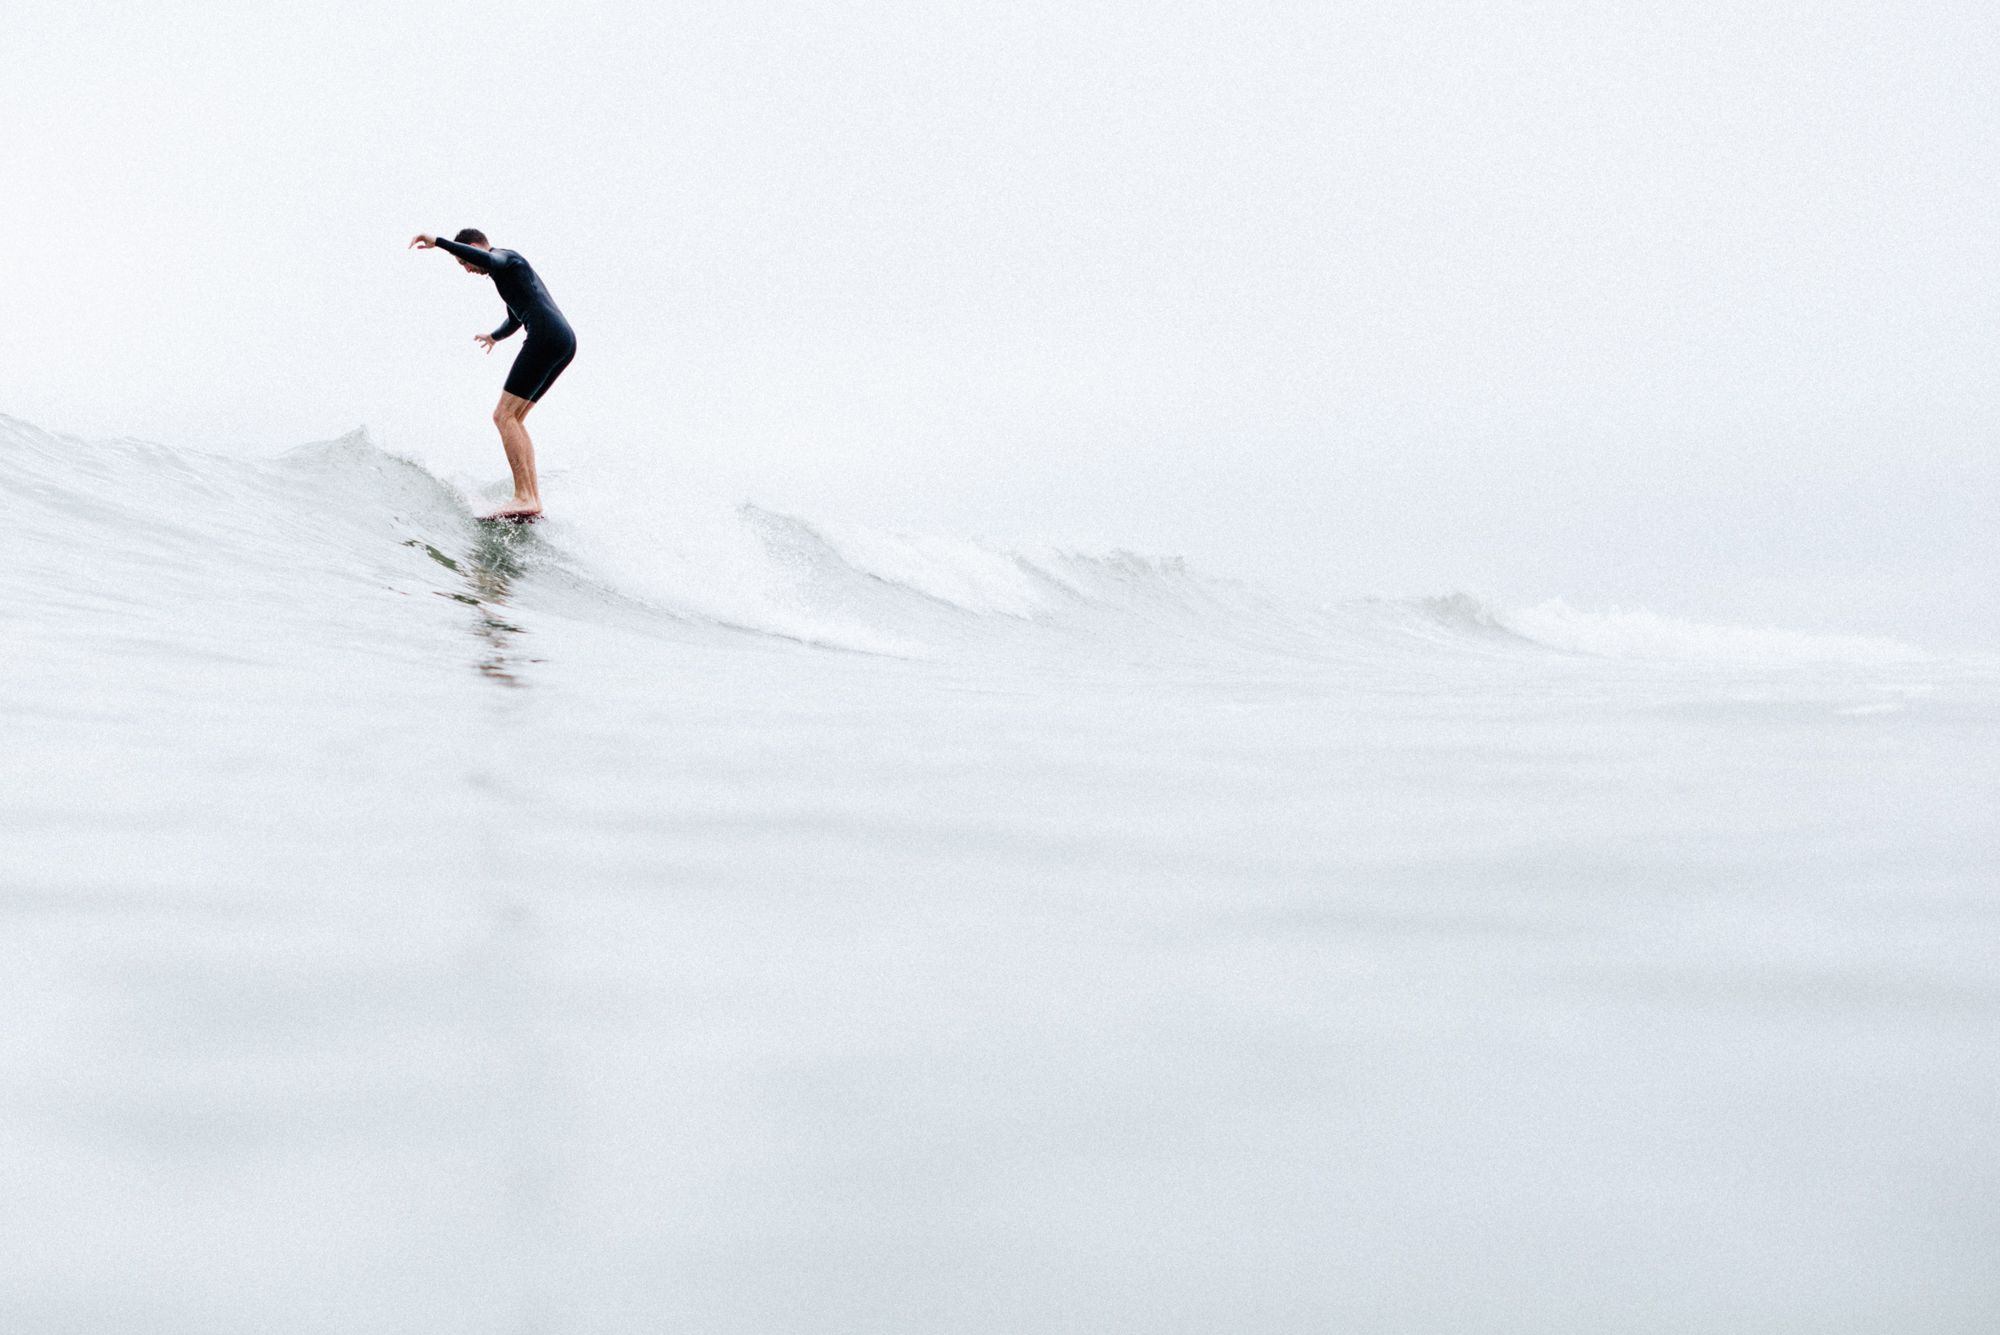 lally_surf_006.jpg